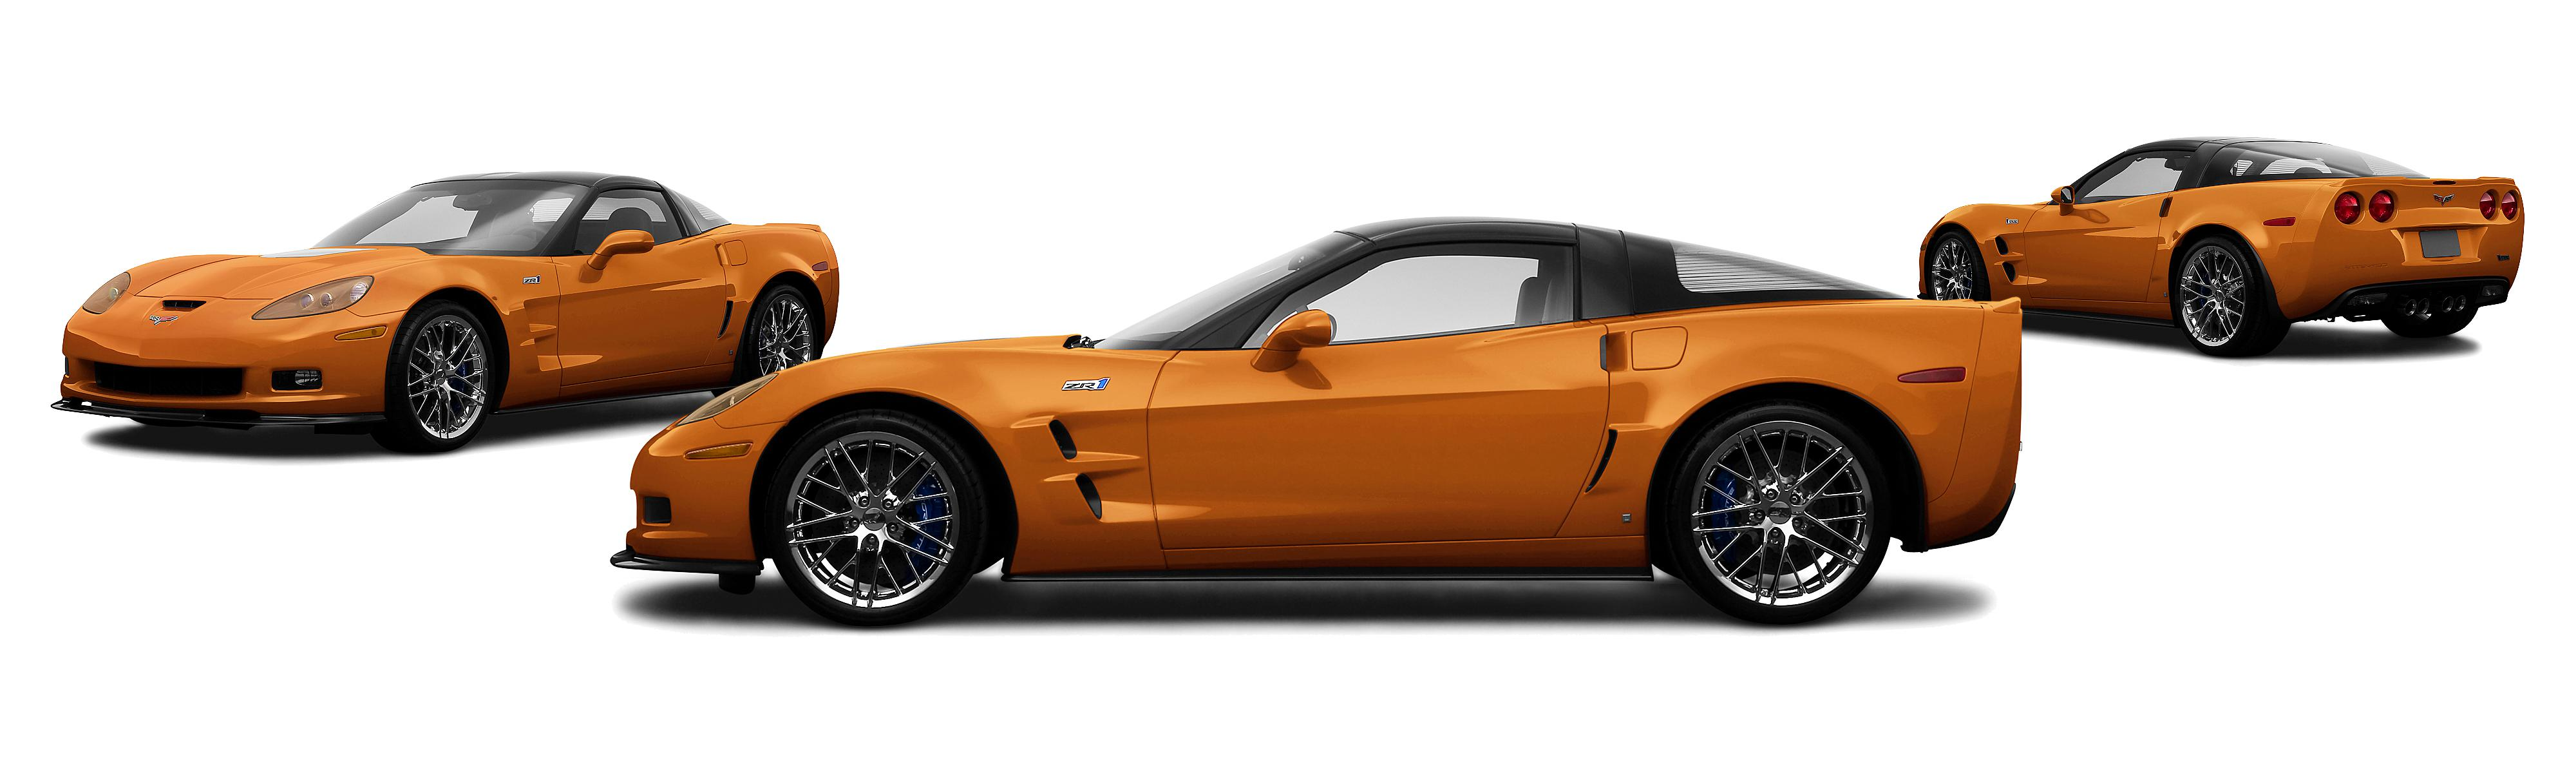 2009 Chevrolet Corvette Zr1 2dr Coupe W 3zr Research